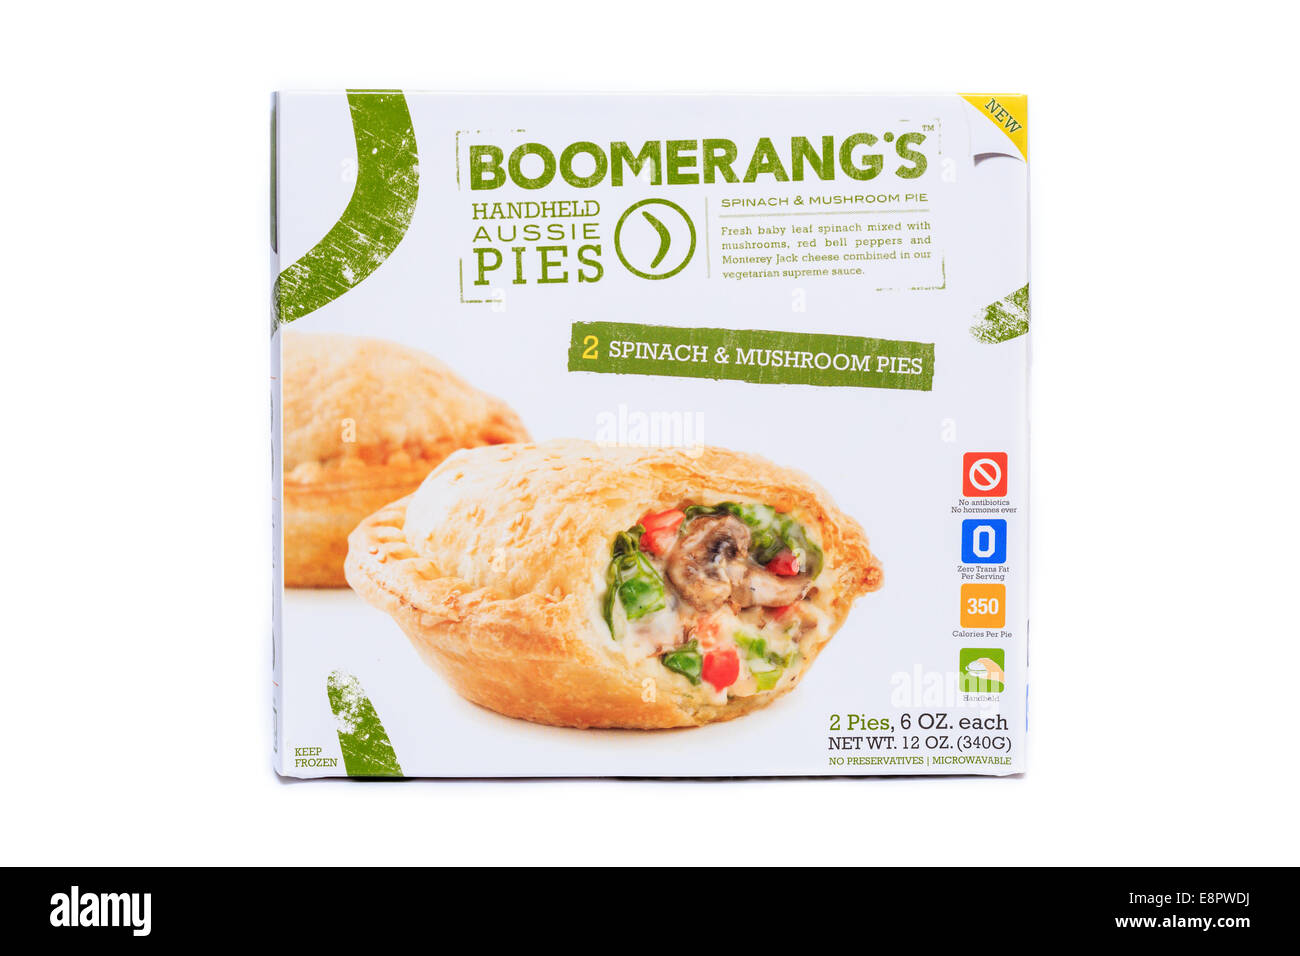 Boomerang's Frozen Prepared Spinach & Mushroom Handheld Aussie Pies - Stock Image